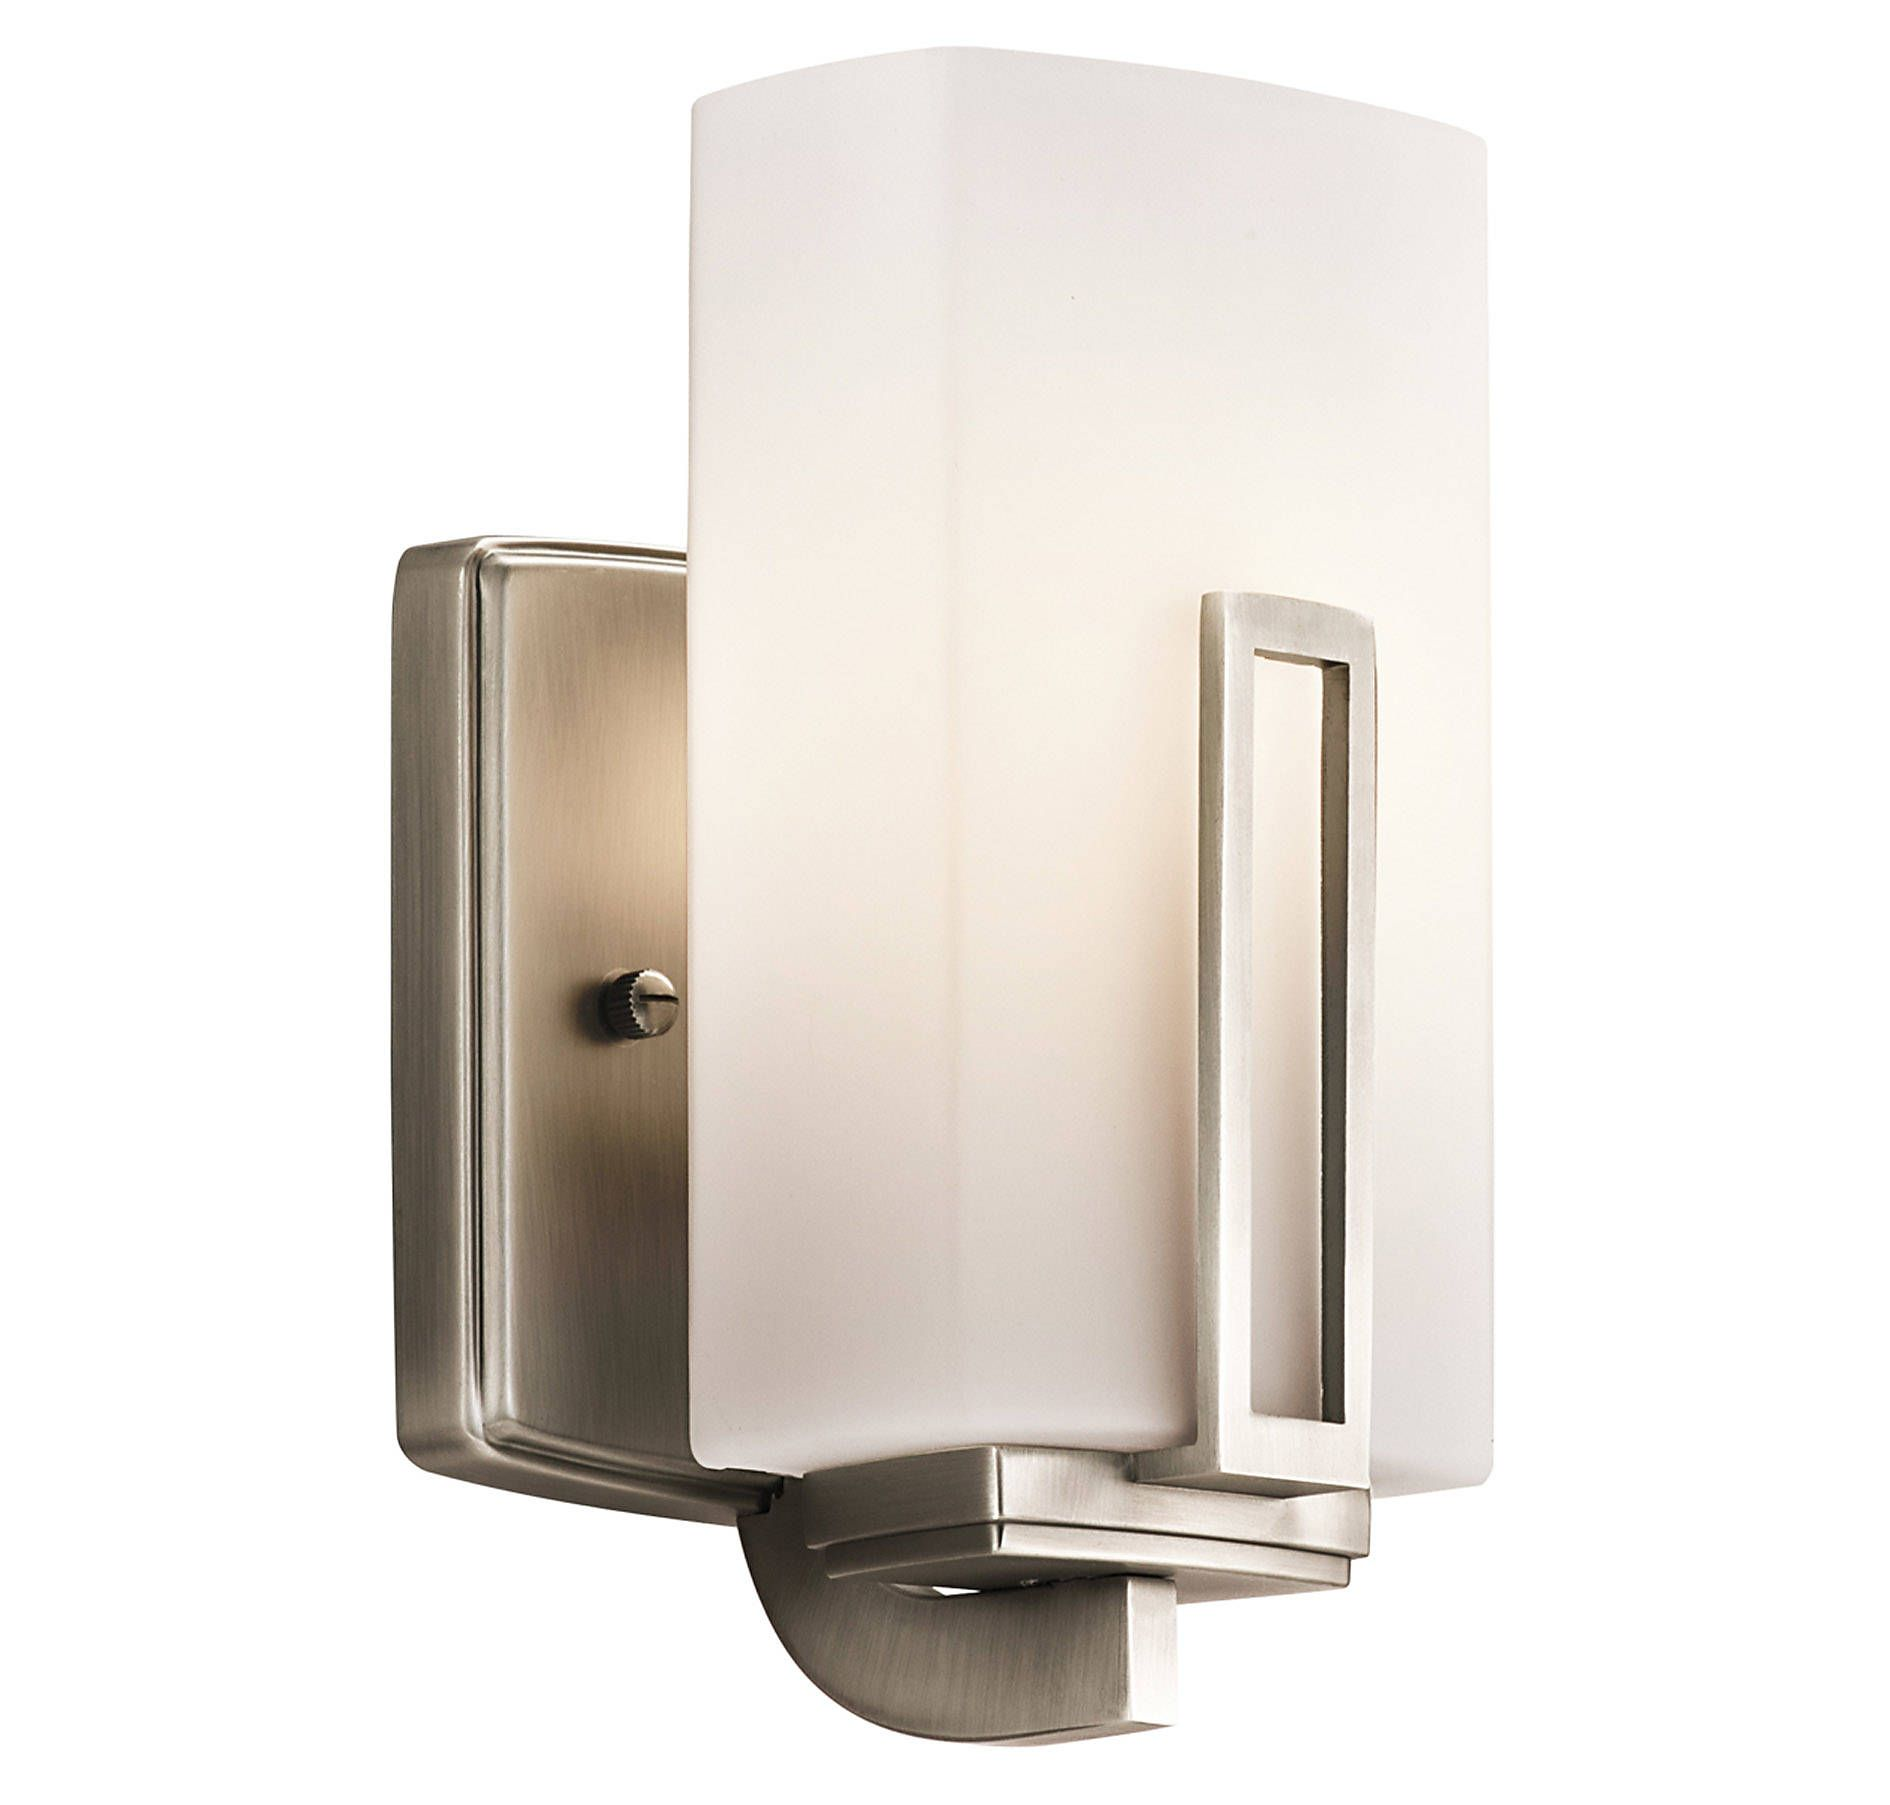 Bathroom Lights Leeds kichler 45224ap leeds wall sconce in antique pewter in wall lights